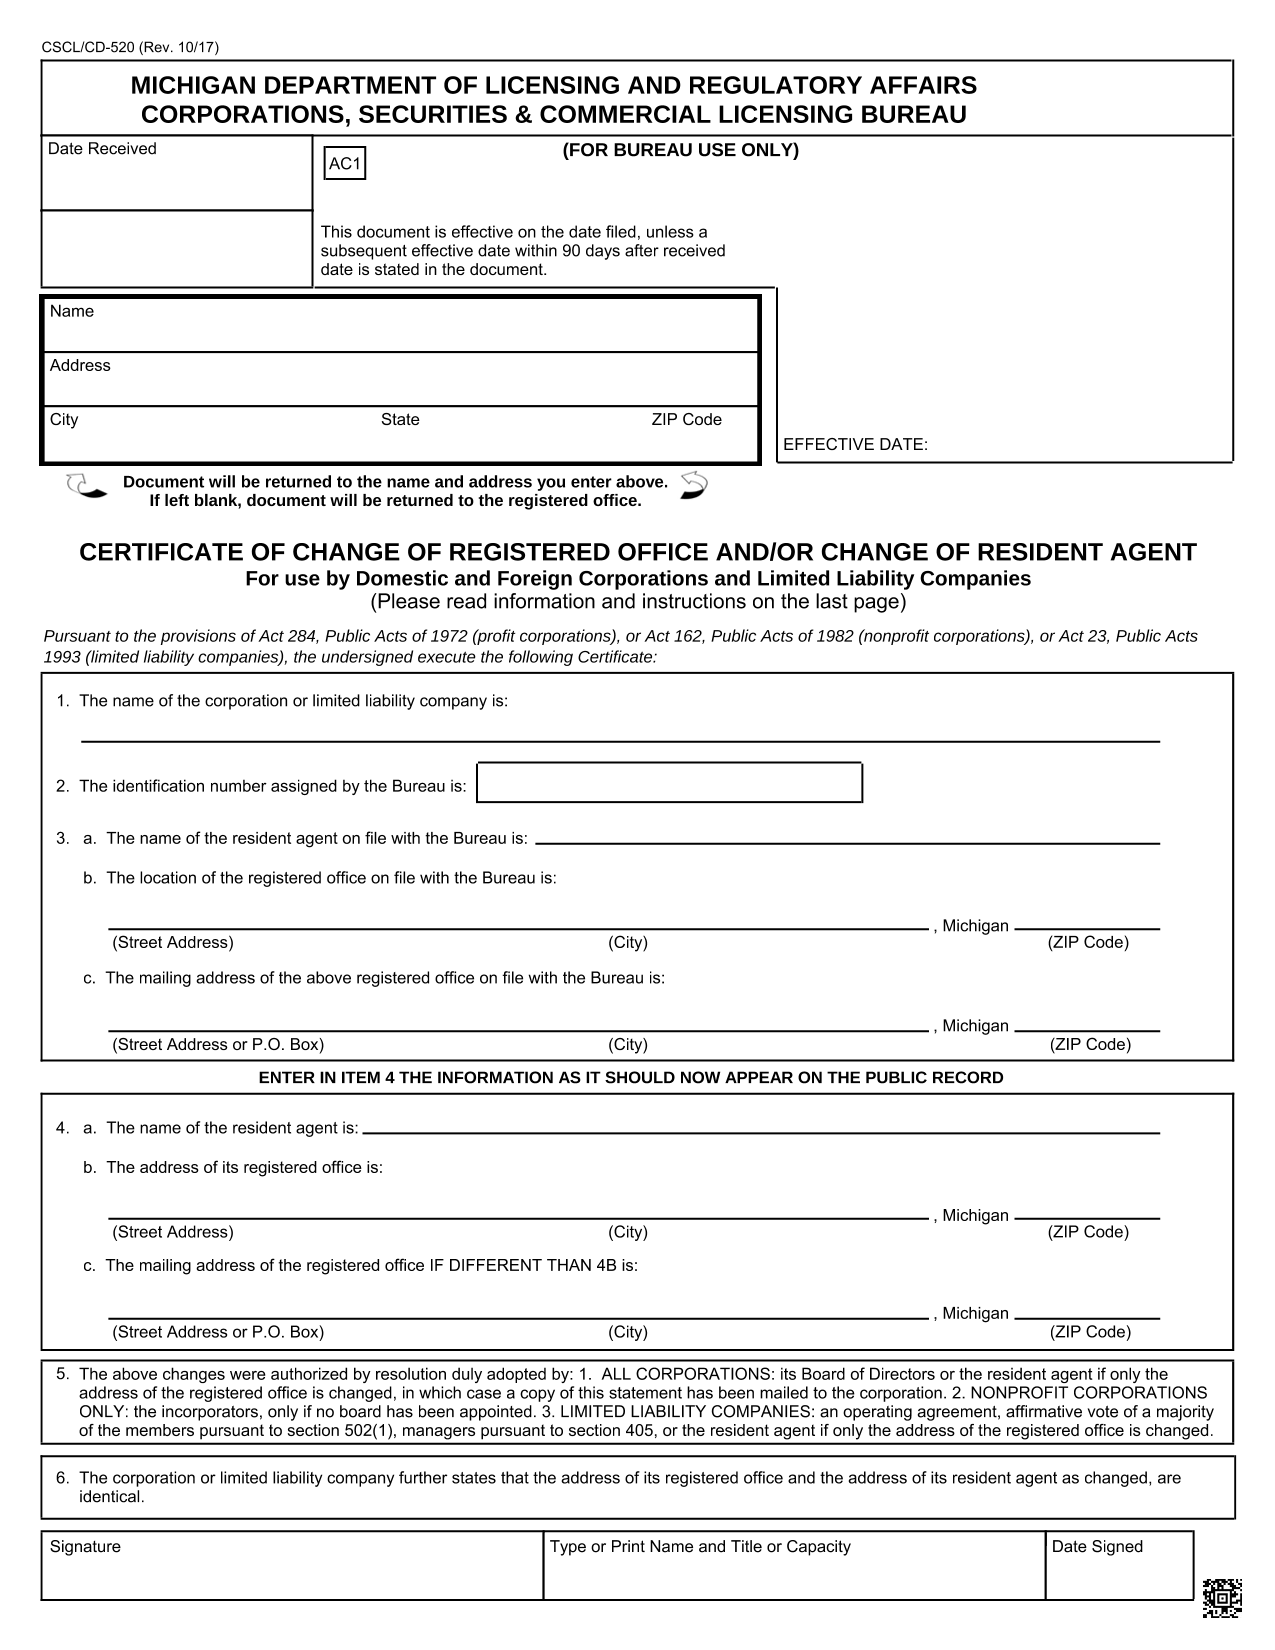 michigan-certificate-of-change-of-registered-agent